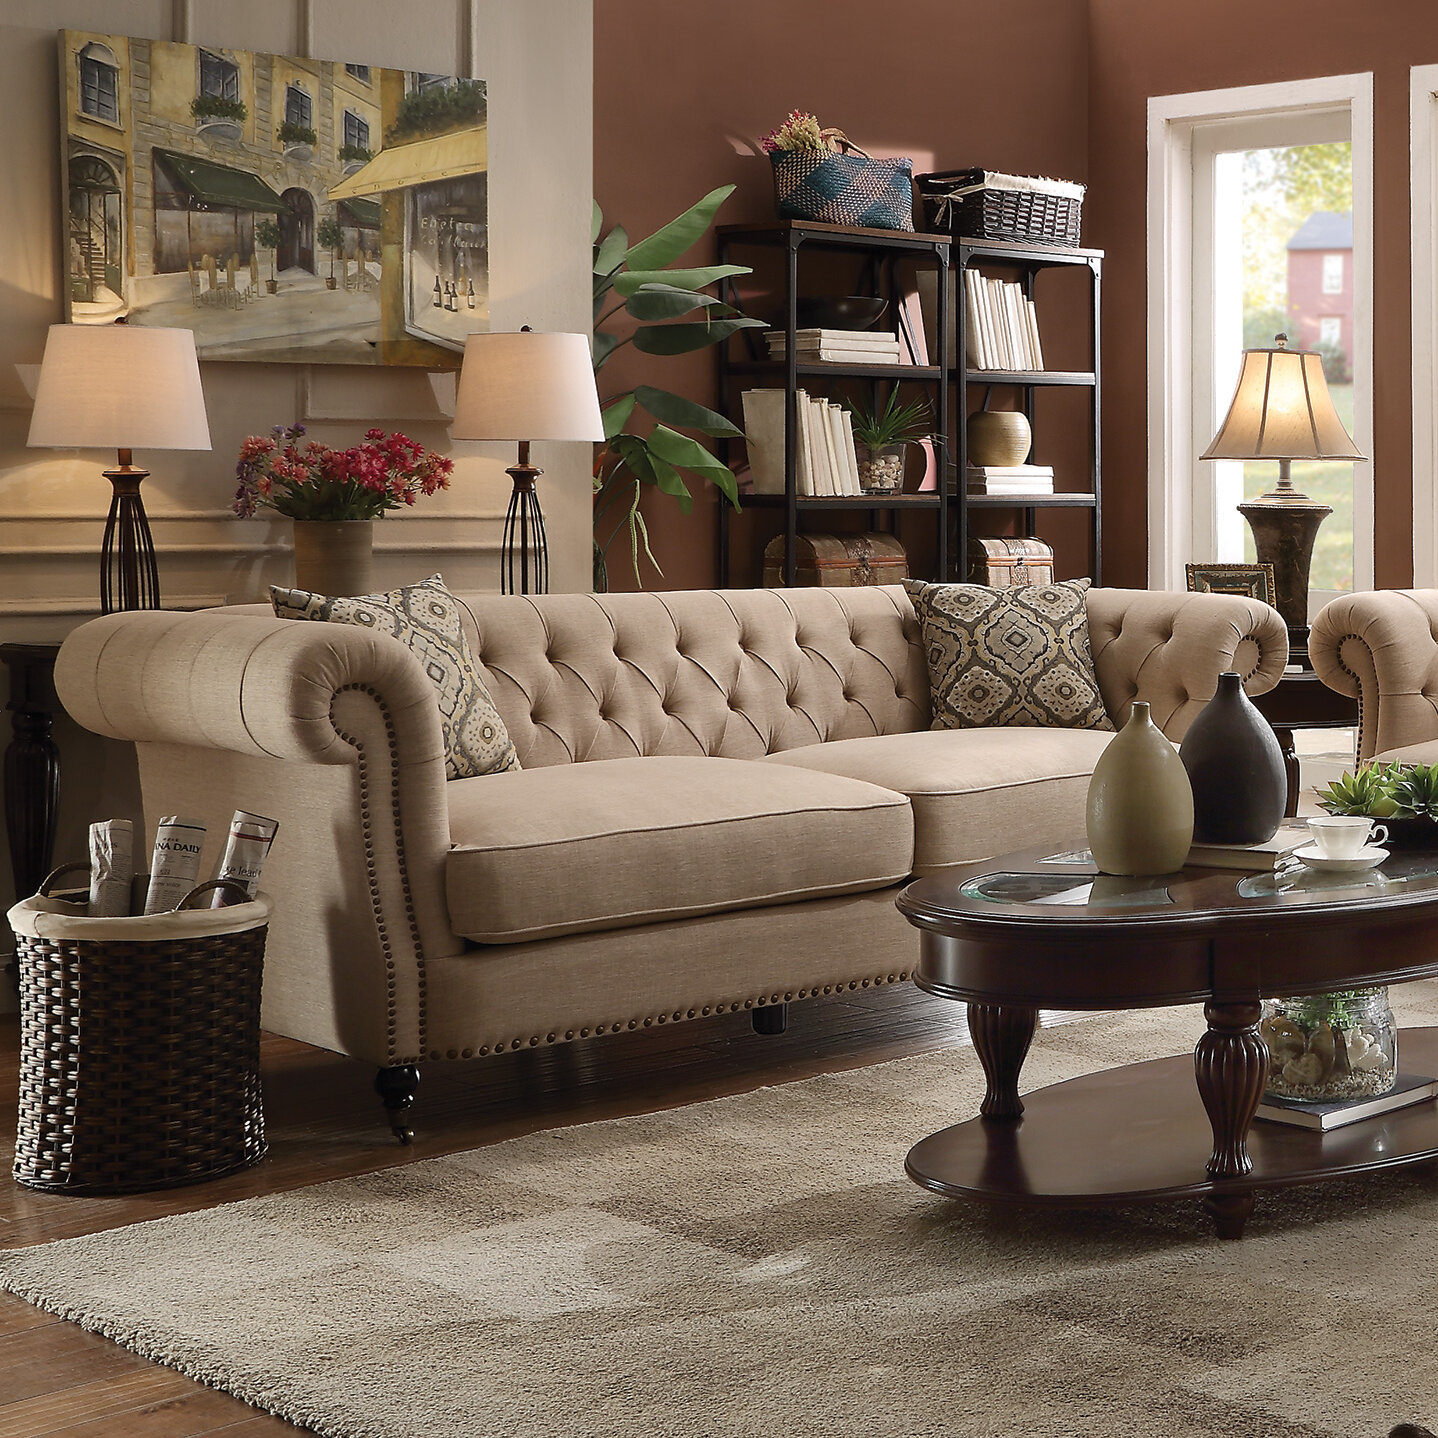 Darby Home Co Foreside Chesterfield Sofa | eBay